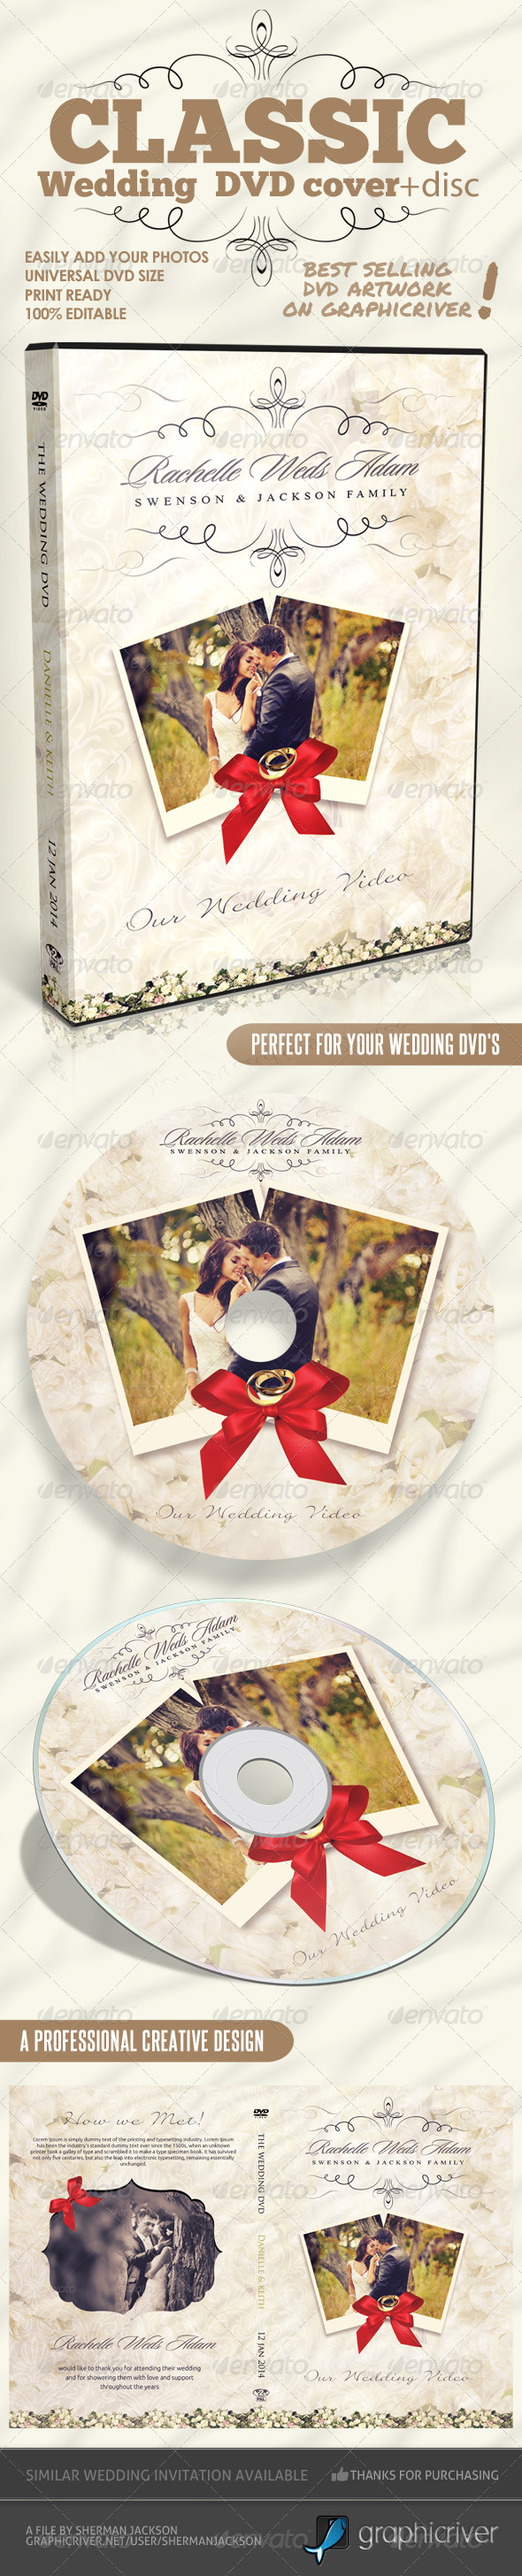 Classique Wedding DVD Covers - CD & DVD Artwork Print Templates